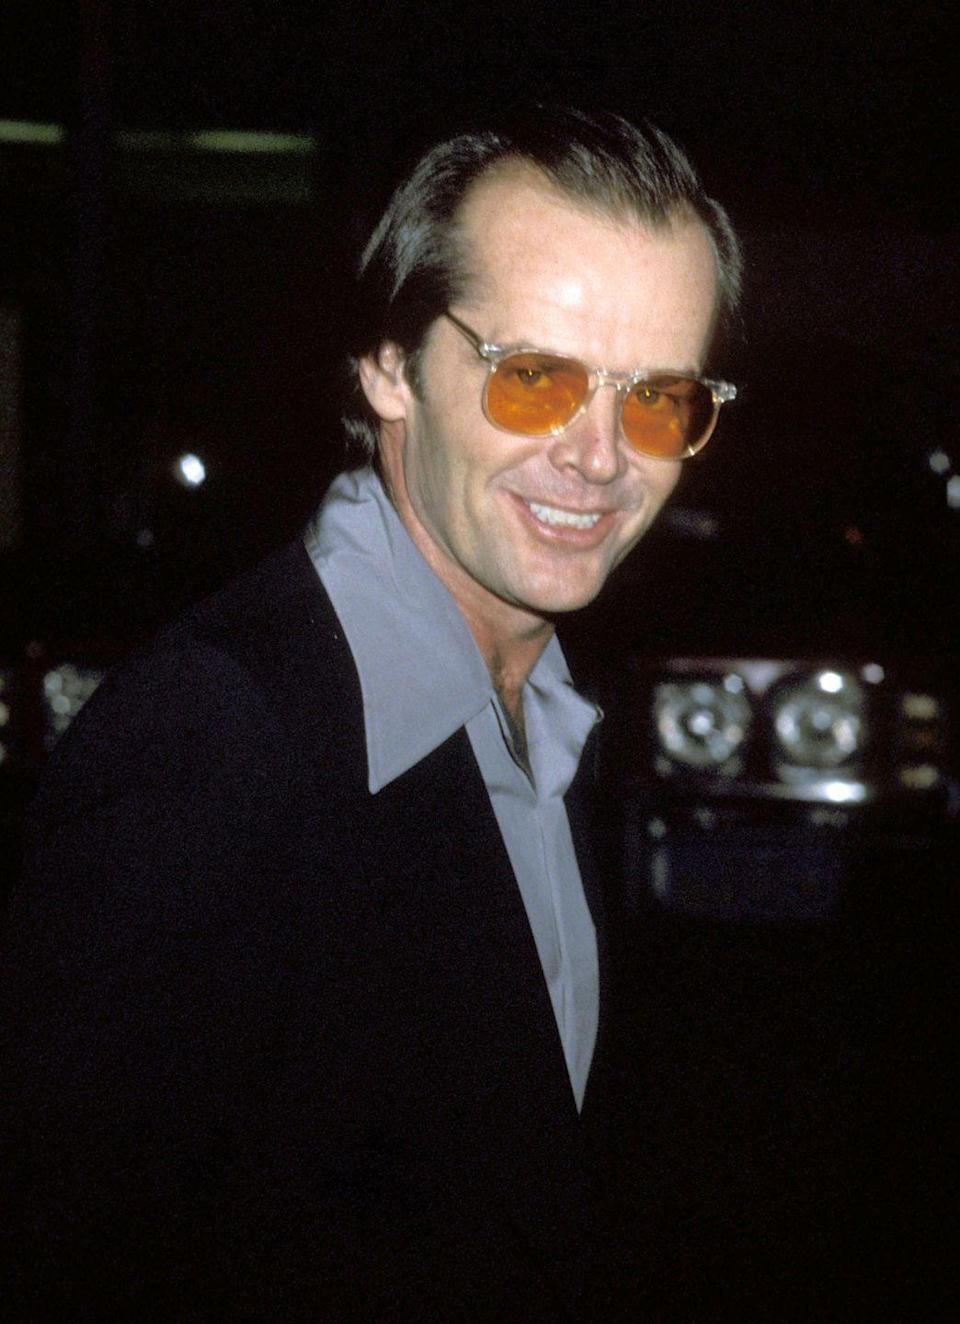 <p>Jack Nicholson arrives at the 1978 stage show <em>Appearing Nightly, </em>starring Lily Tomlin, at the Huntington Hartford Theater in Los Angeles.</p>